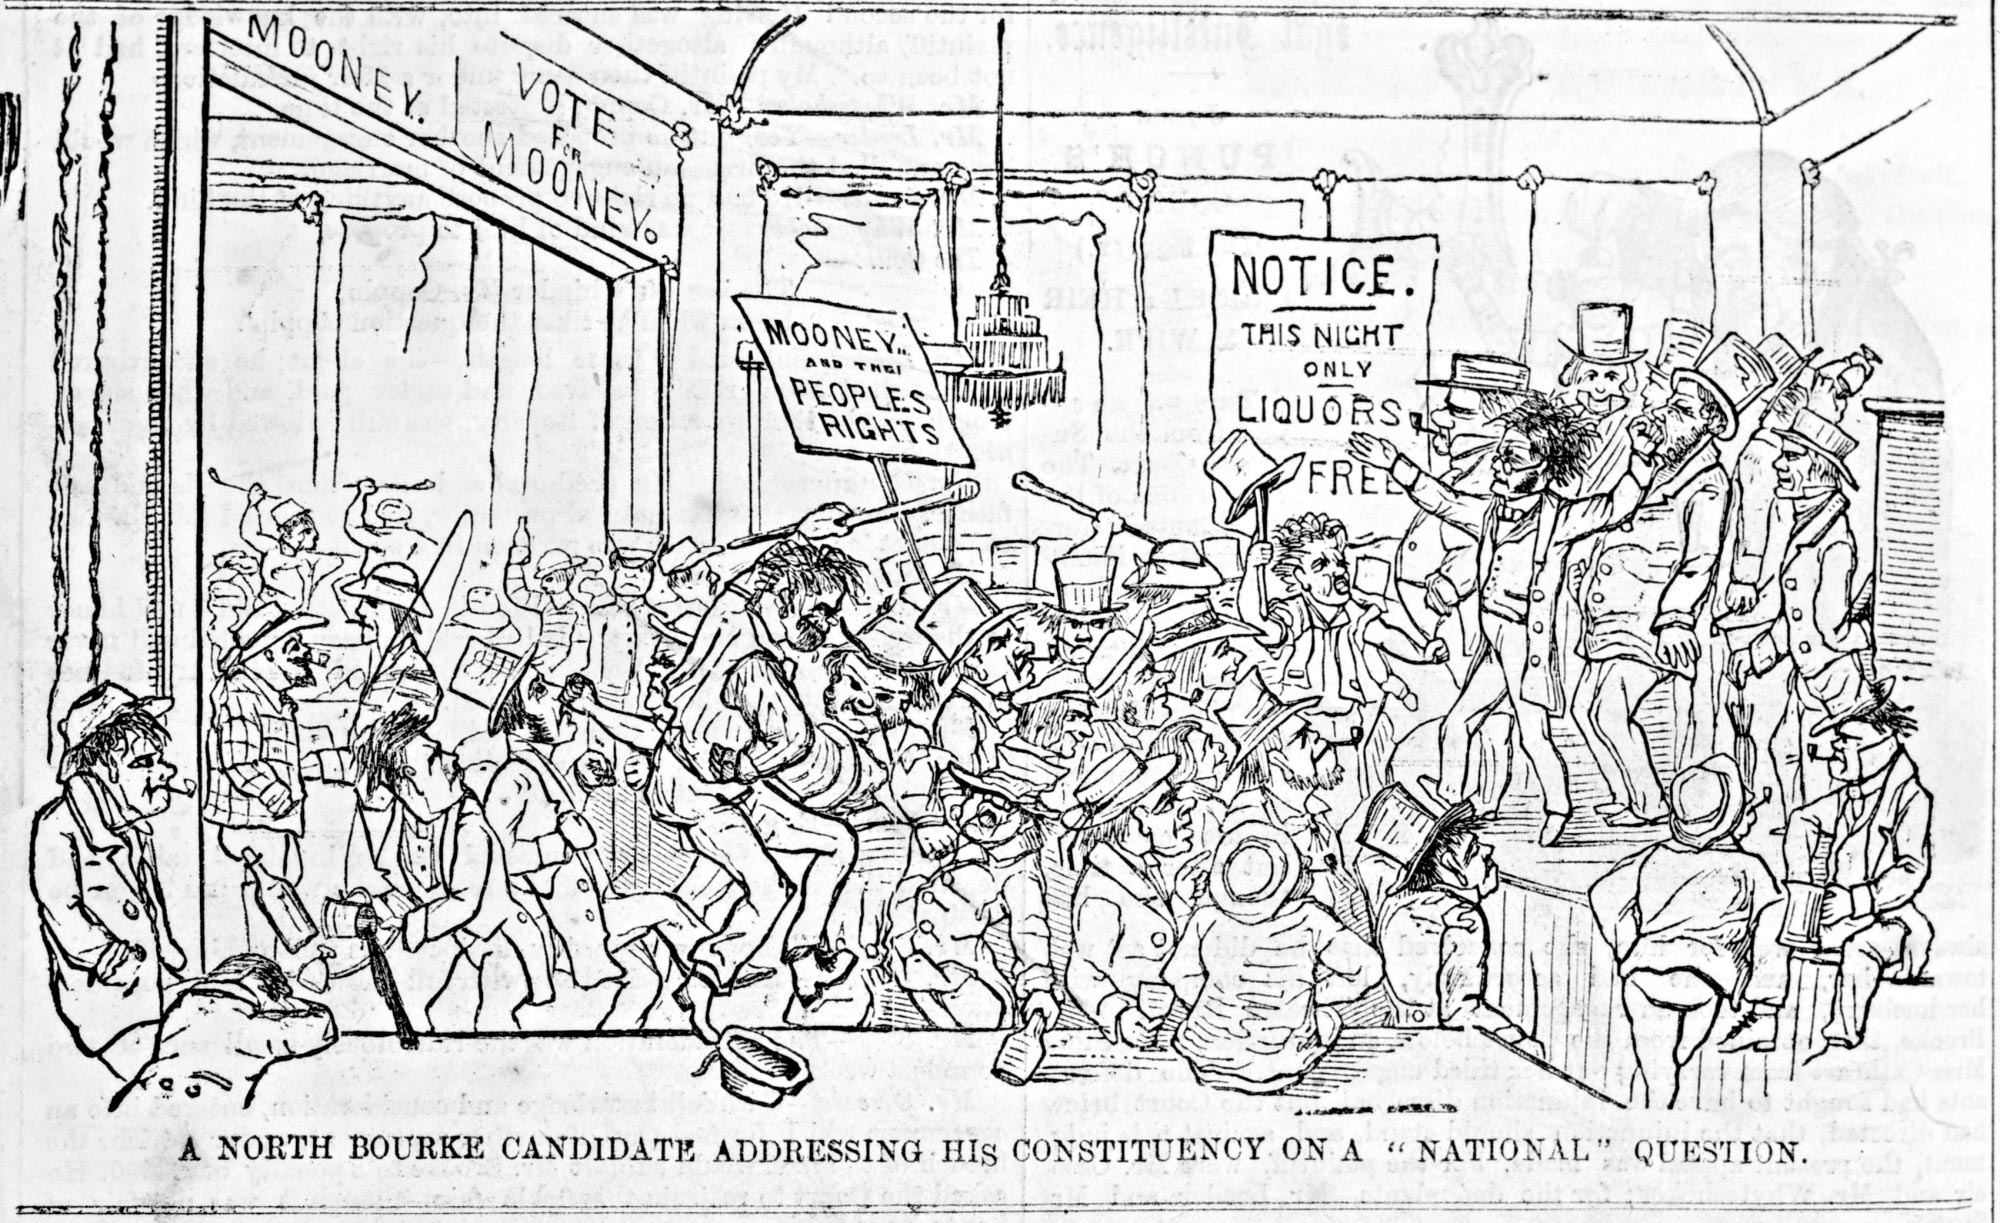 Electioneering in the pub, published by Edgar Ray and Frederick Sinnett, 1855.